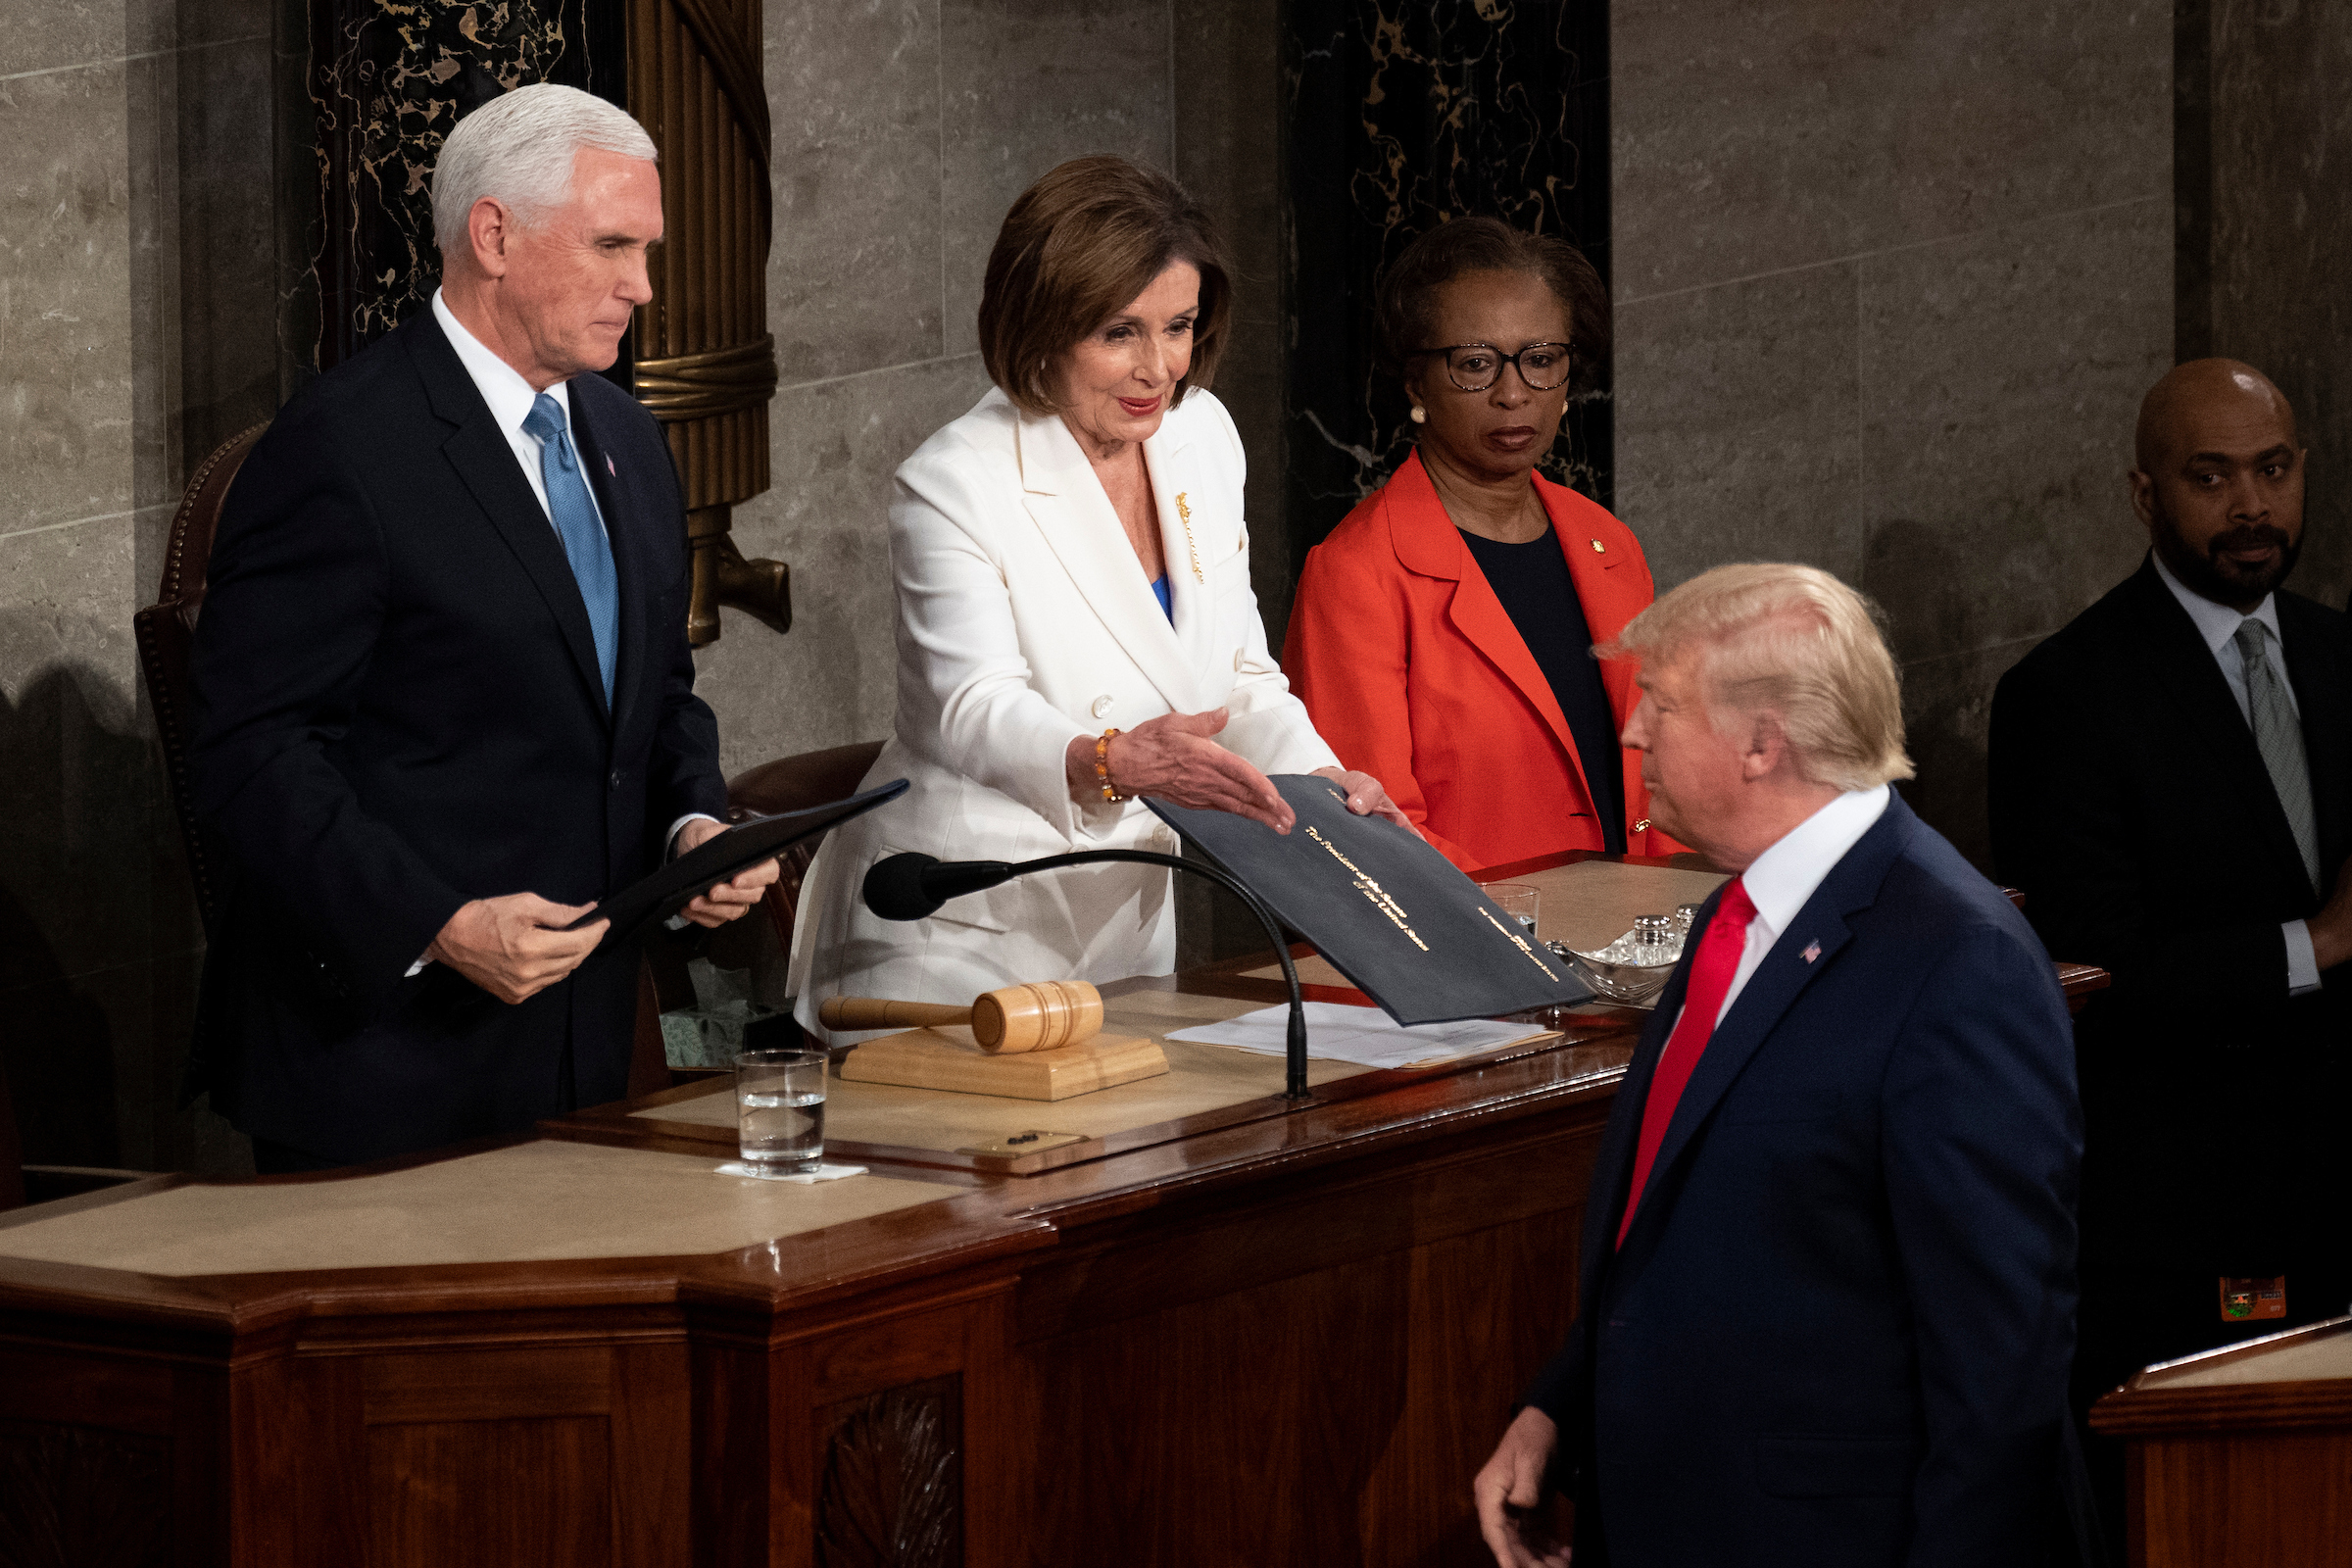 UNITED STATES - FEBRUARY 4: President Donald Trump turns away as Speaker of the House Nancy Pelosi reaches out to shake his hand as he arrives to deliver his State of the Union address to a joint session of Congress in the Capitol on Tuesday, Feb. 4, 2020. (Photo by Caroline Brehman/CQ Roll Call)